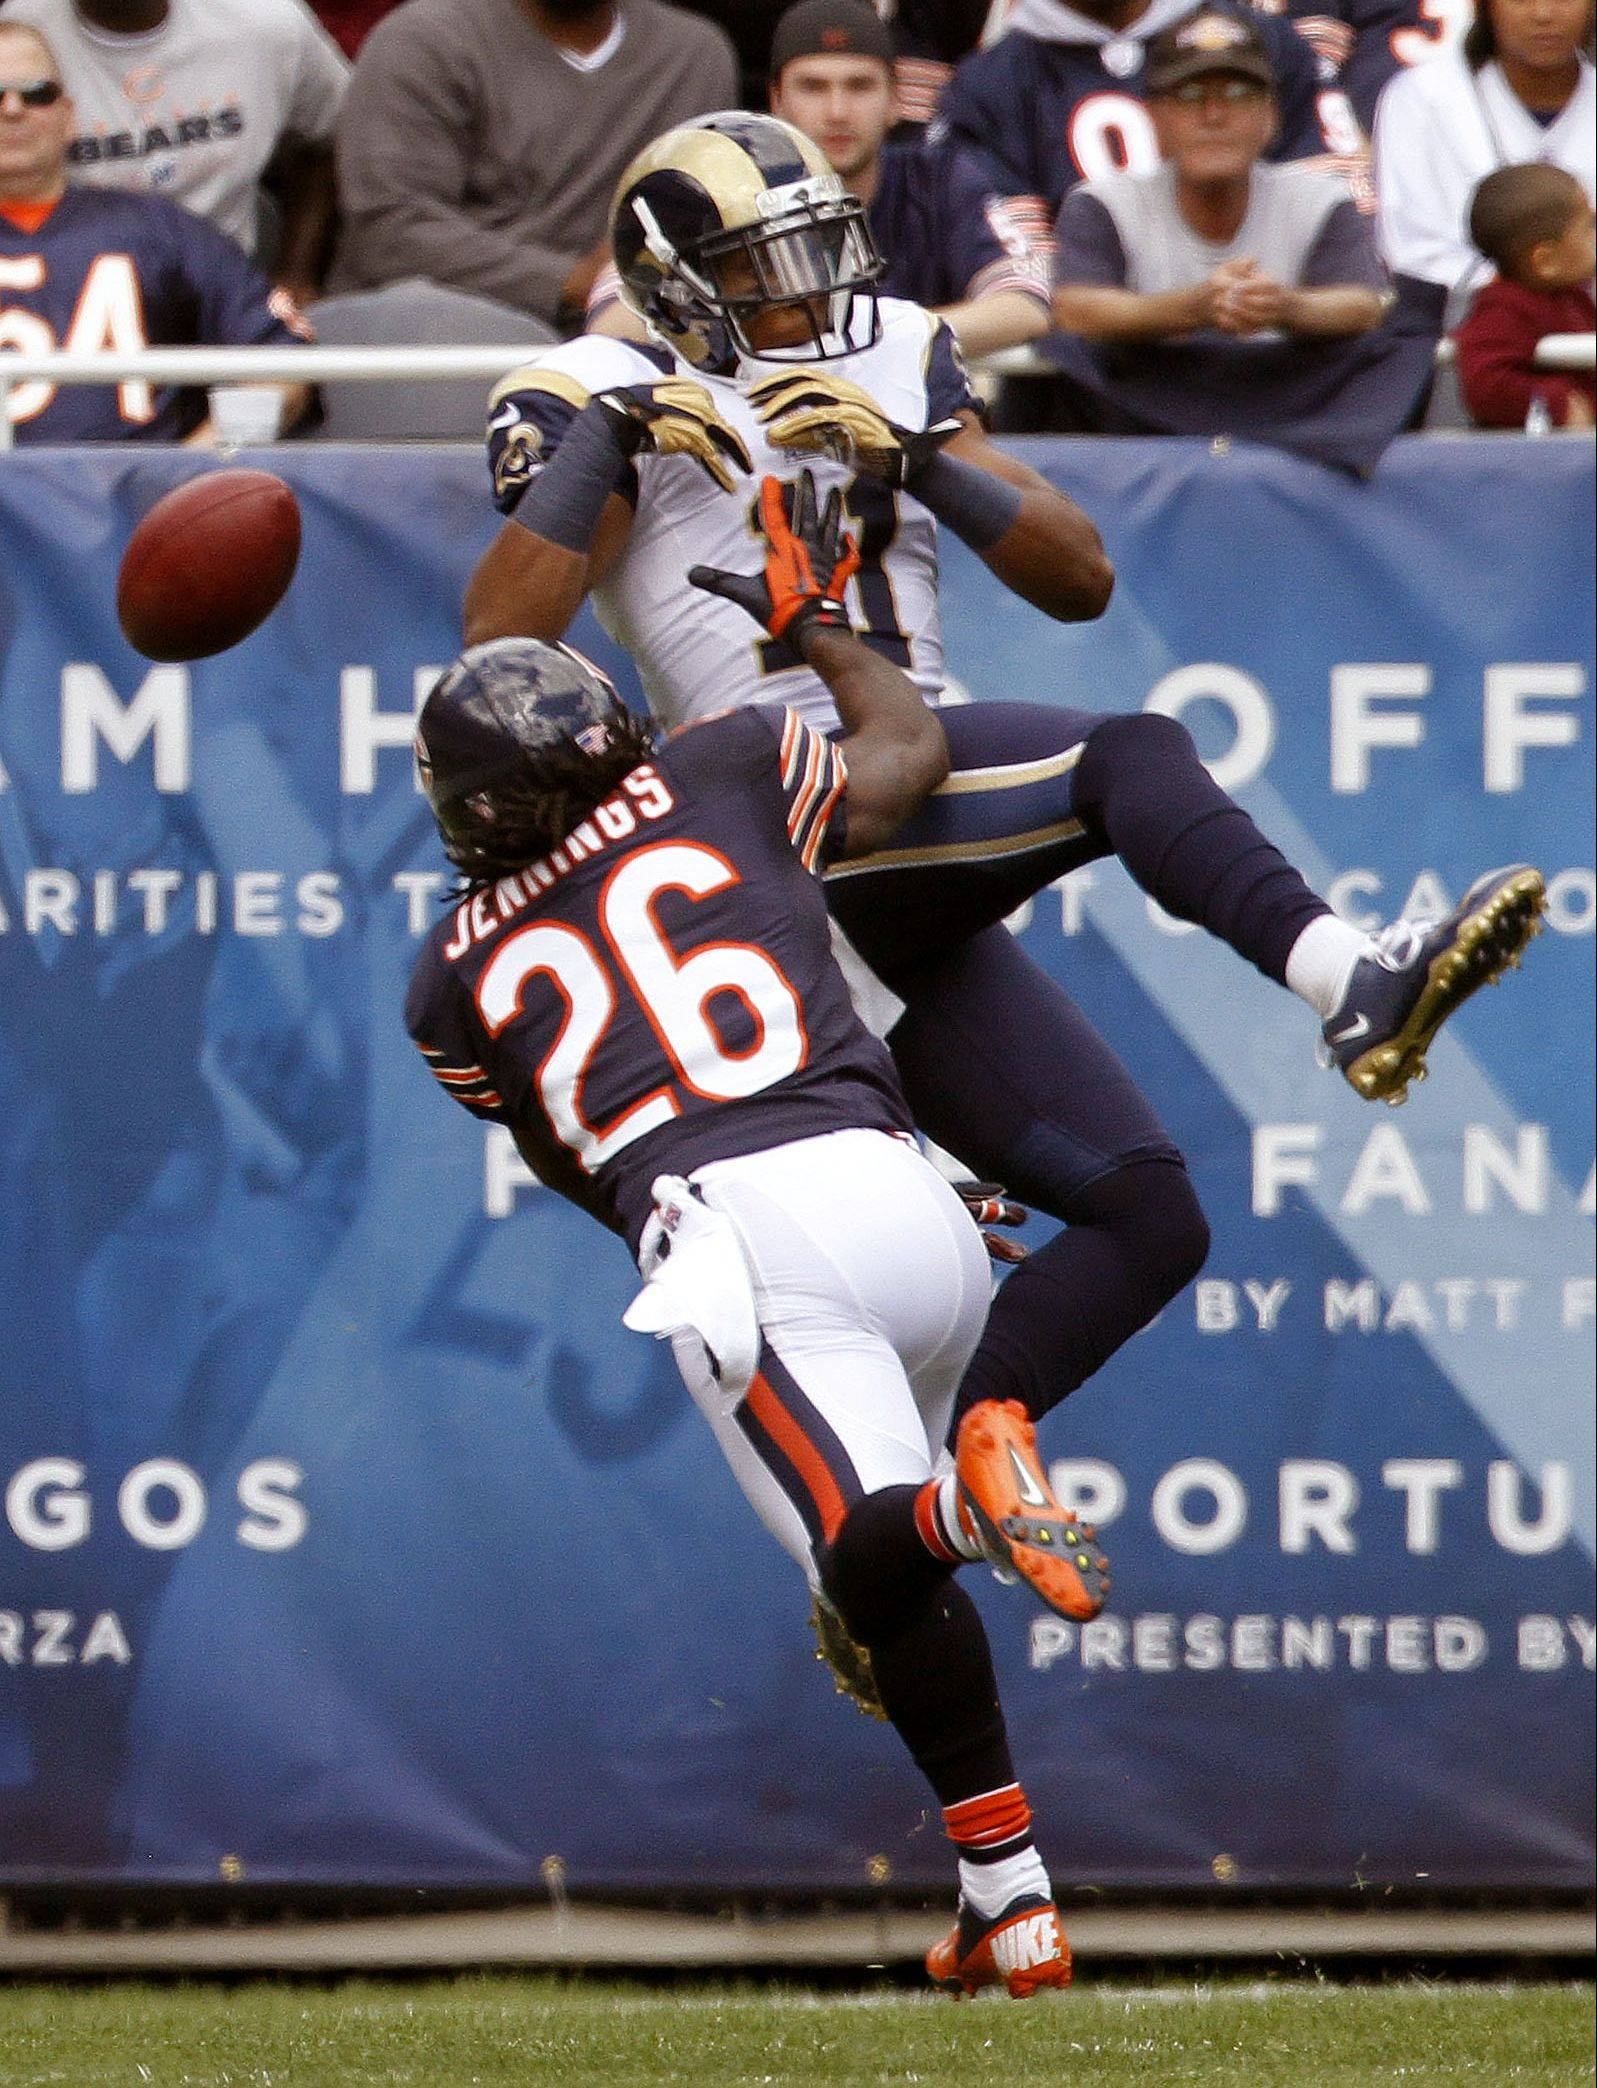 Bears cornerback Tim Jennings breaks up a possible touchdown catch by Rams wide receiver Brandon Gibson during the Bears' 23-6 win Sunday afternoon at Soldier Field.